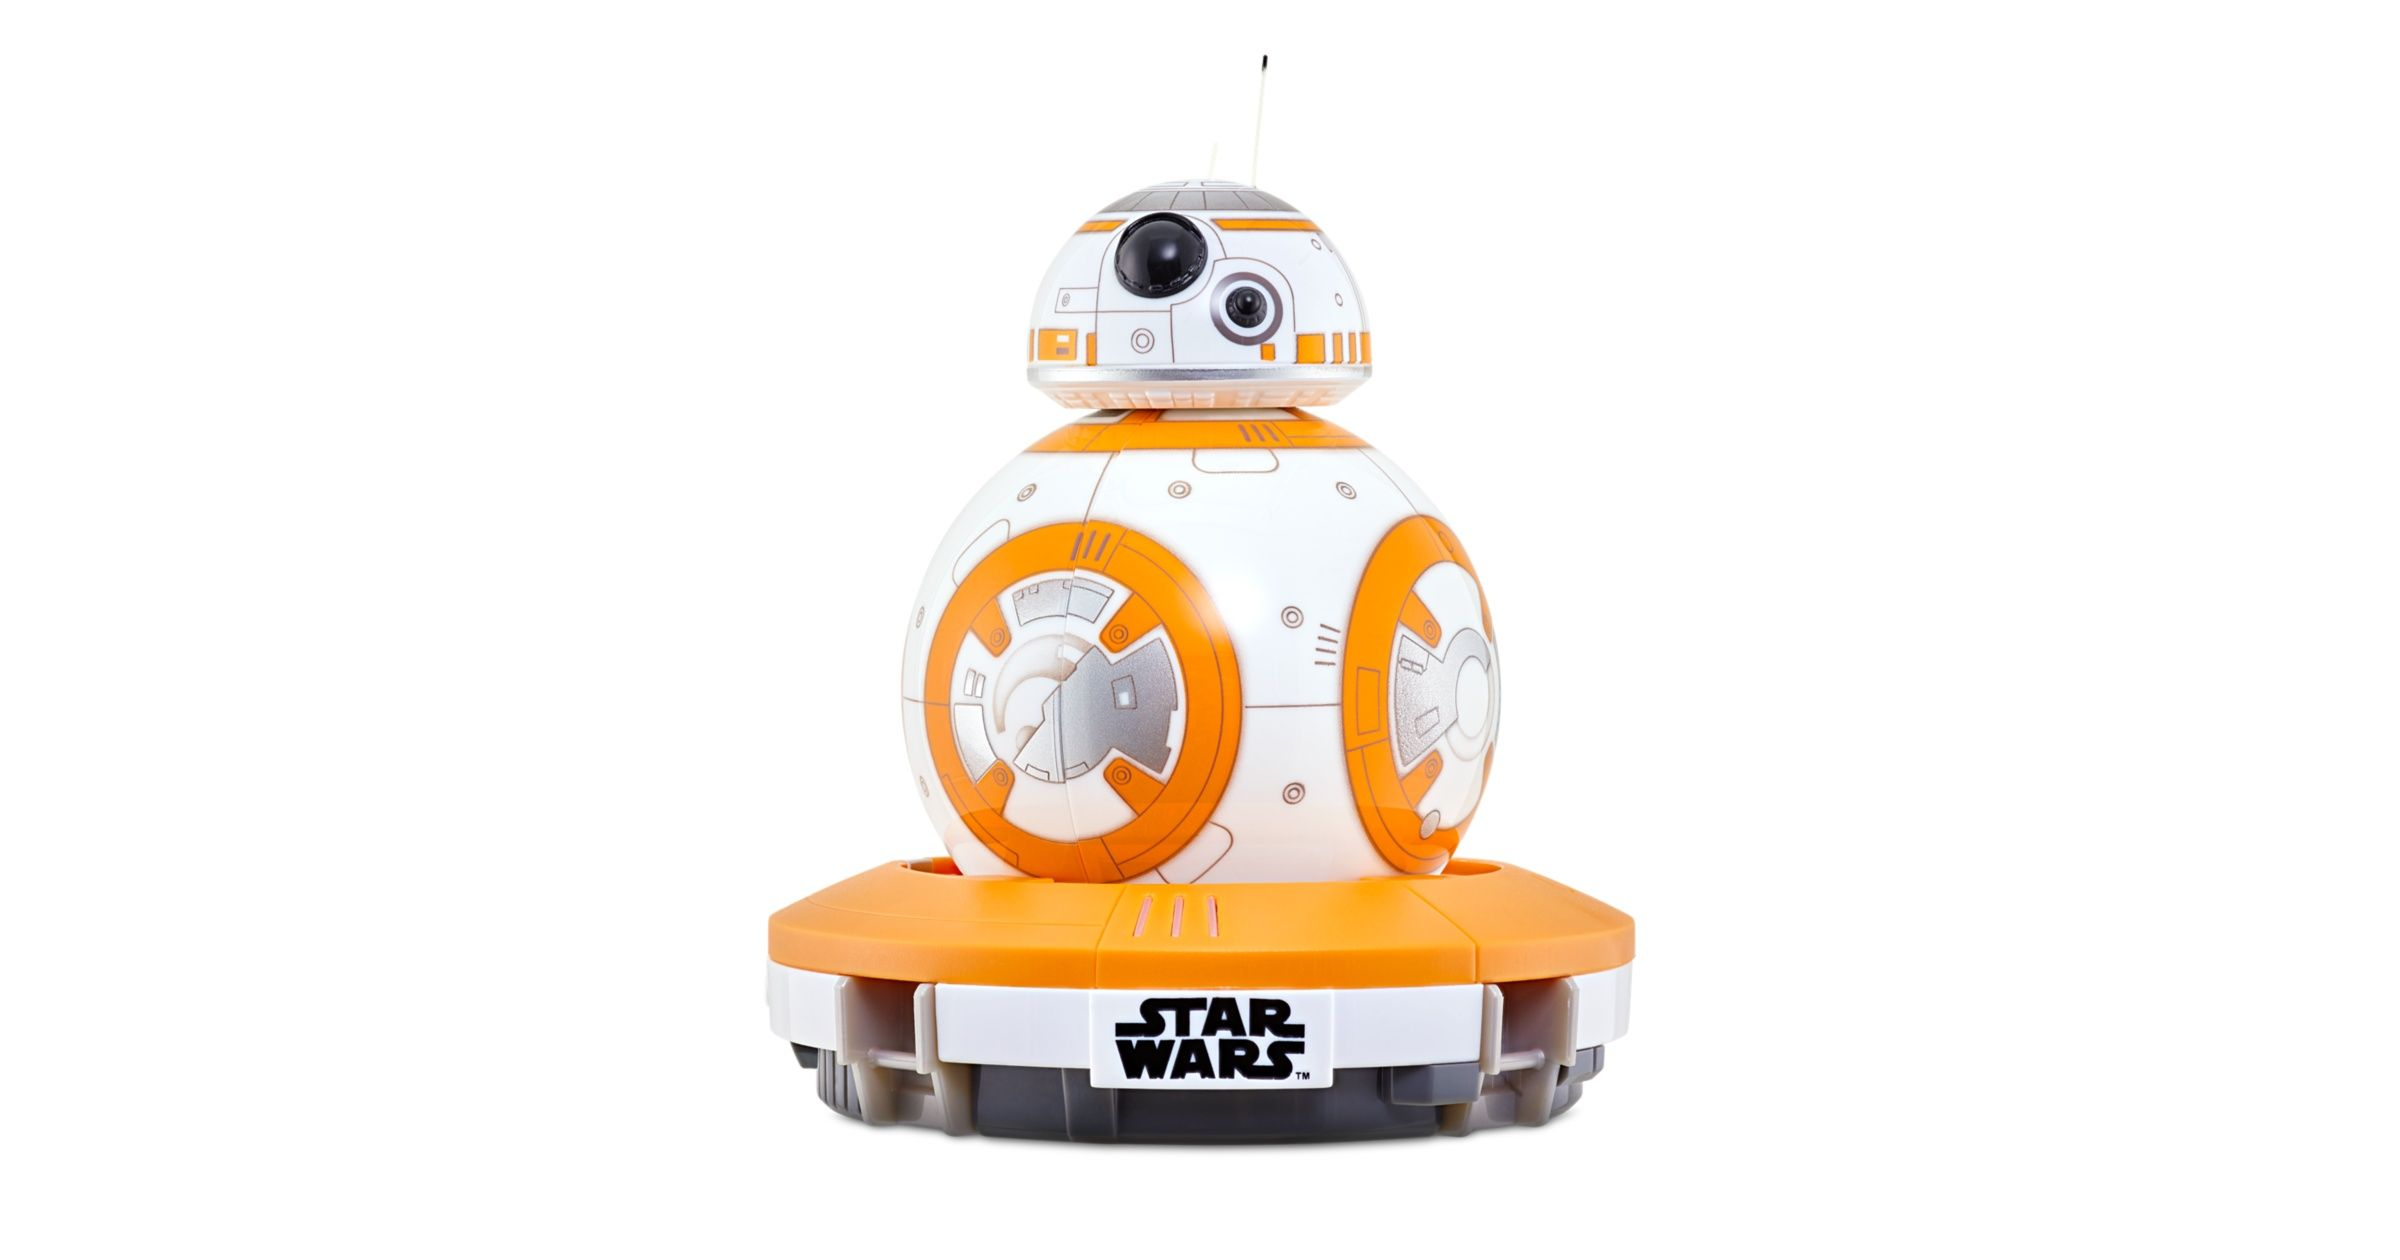 Bb8 appenabled droid by sphero iphone accessories